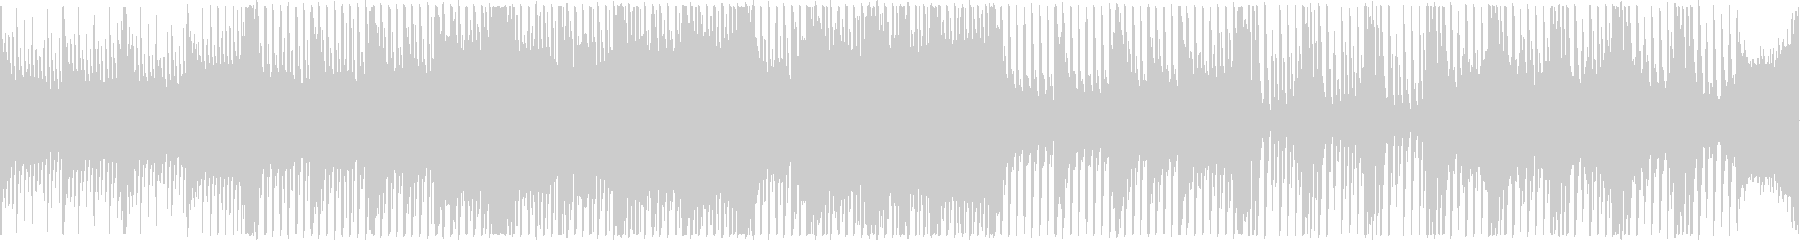 Happy song with good tempo's unreproduced waveform